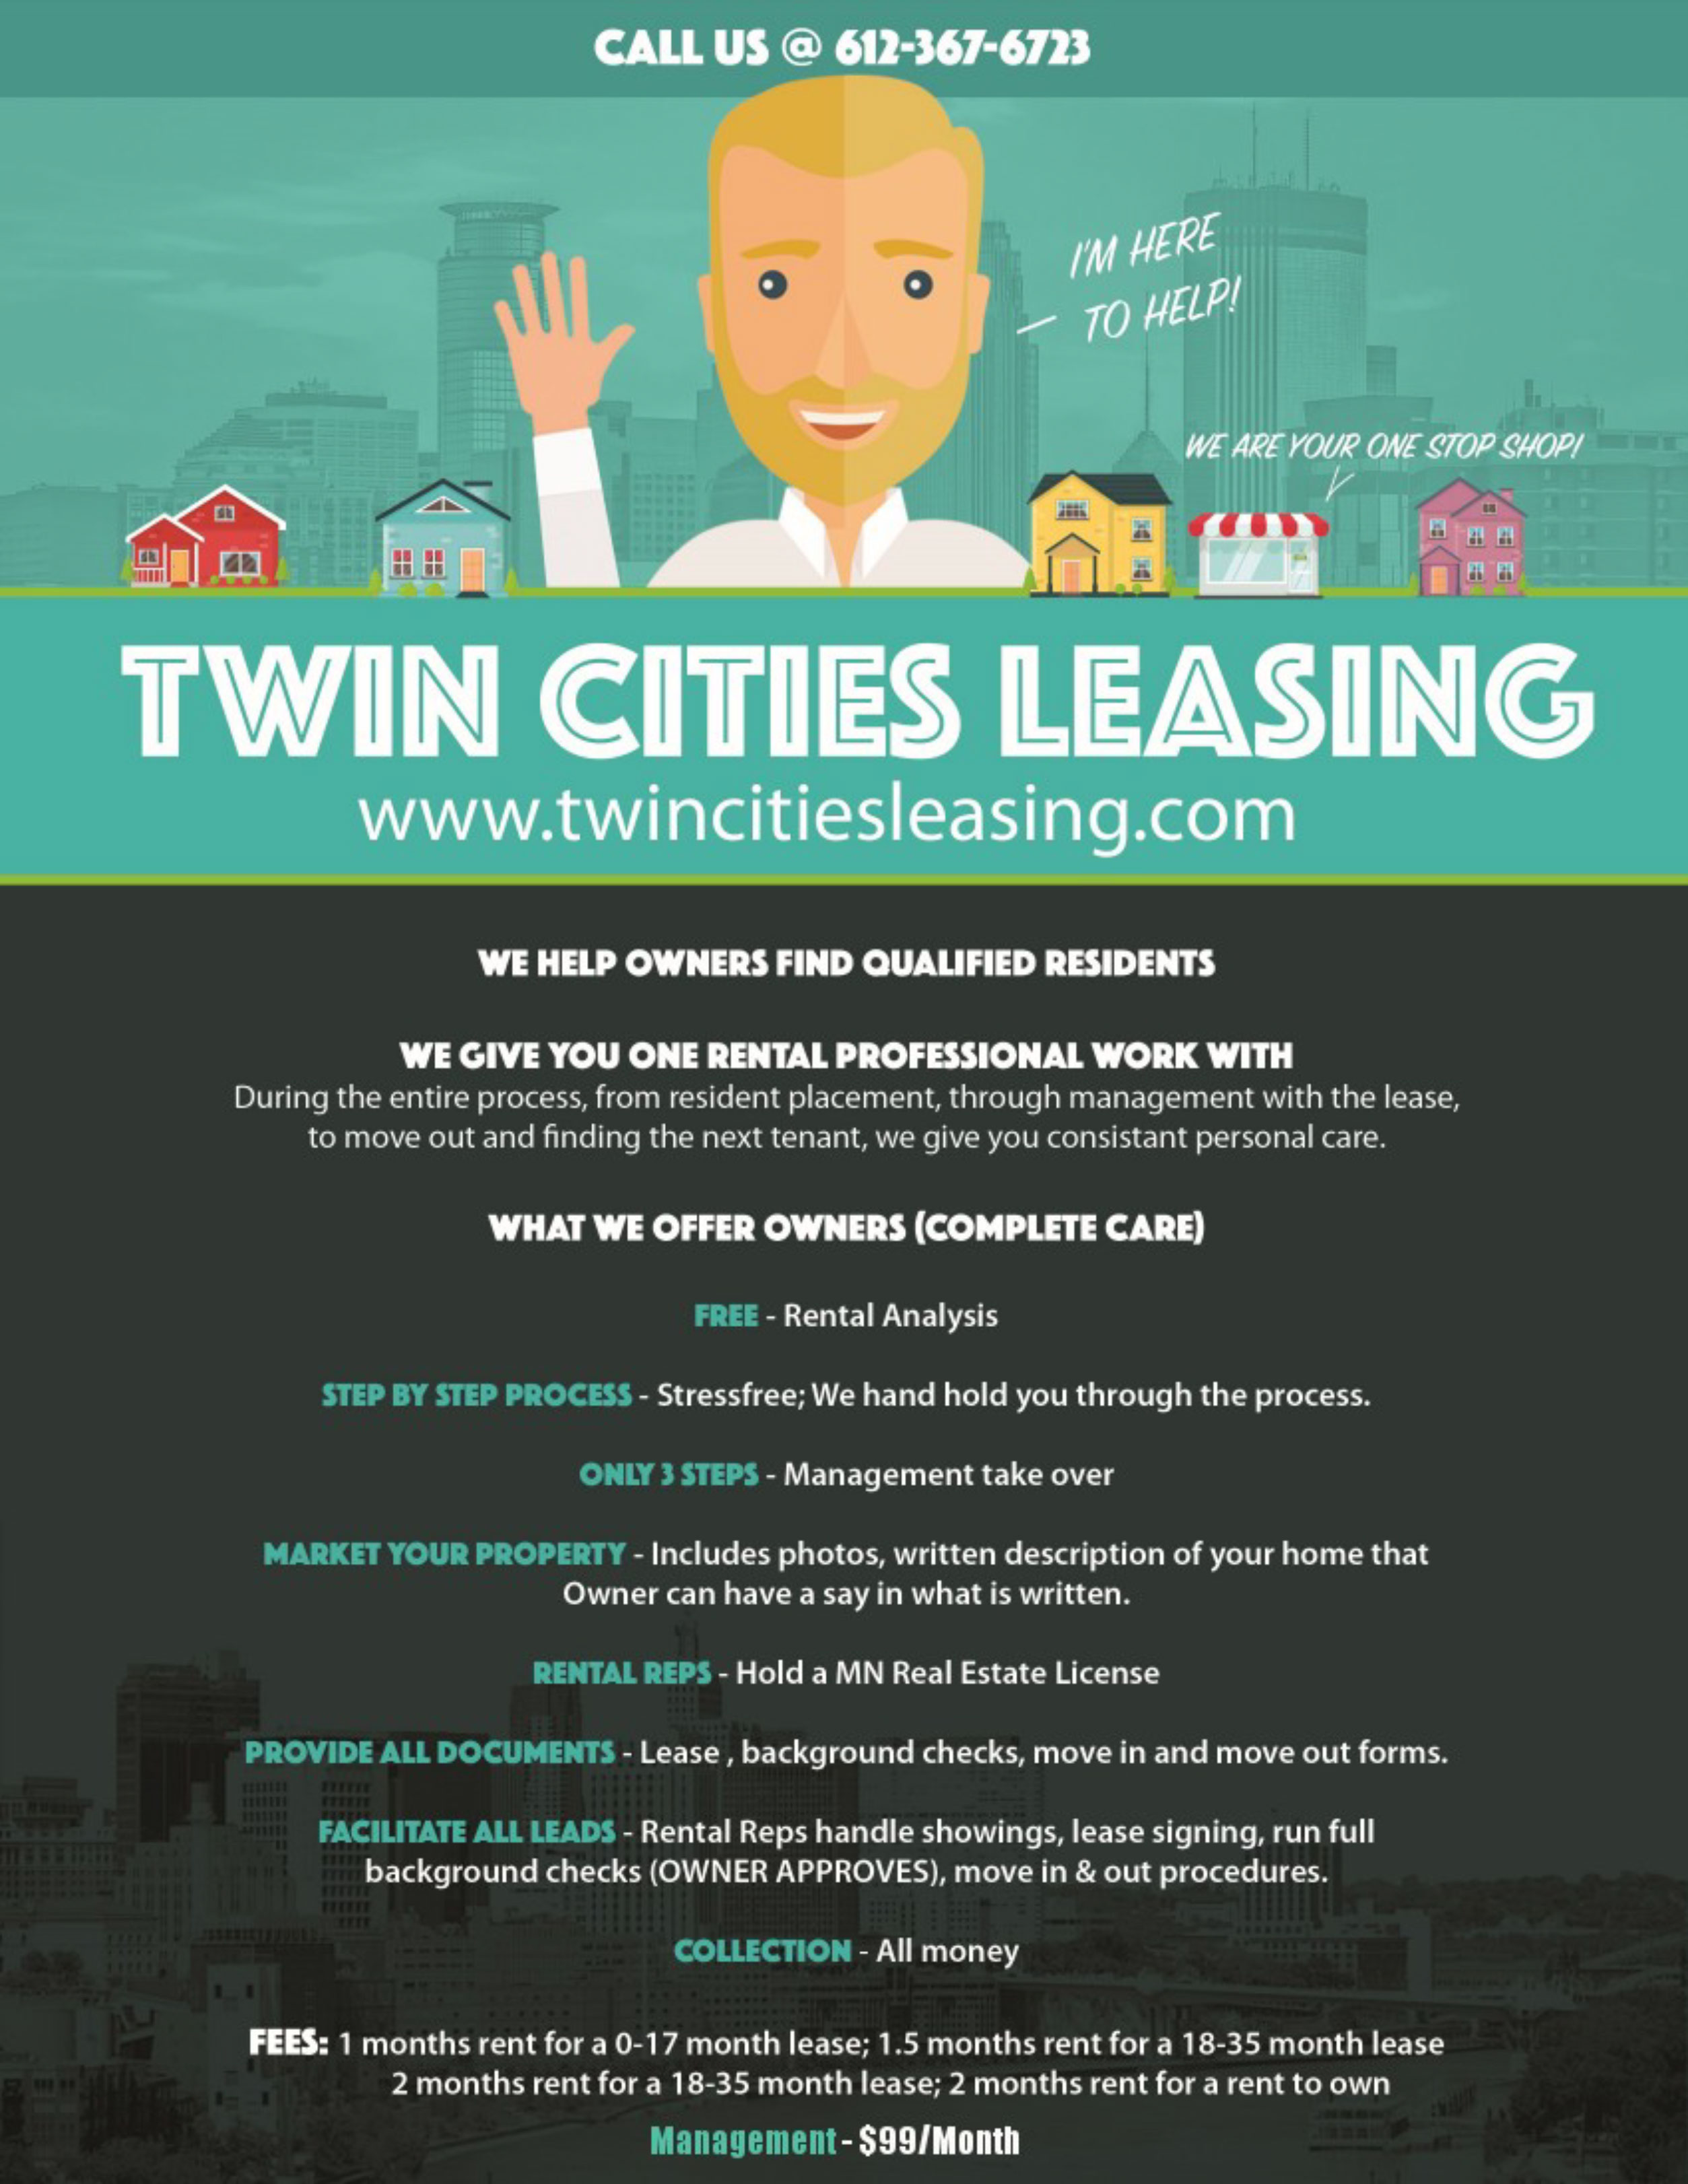 Twin-Cities-Leasing---Realtor-Referral-Agreement-Flyer-2